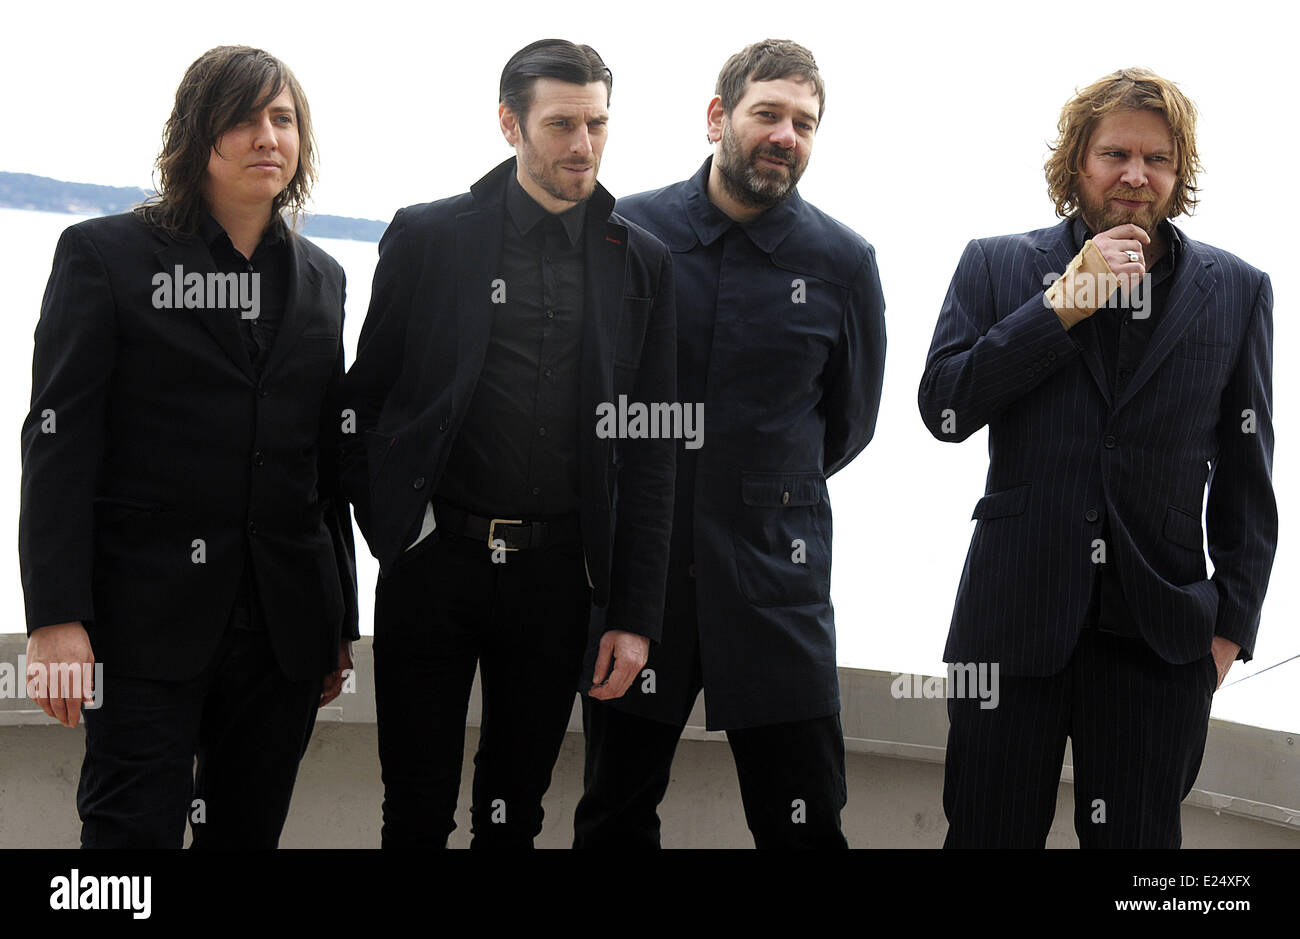 English Band Archive Attend A Photo Call During The Midem Festival 2013 Featuring Archive Where Cannes France When